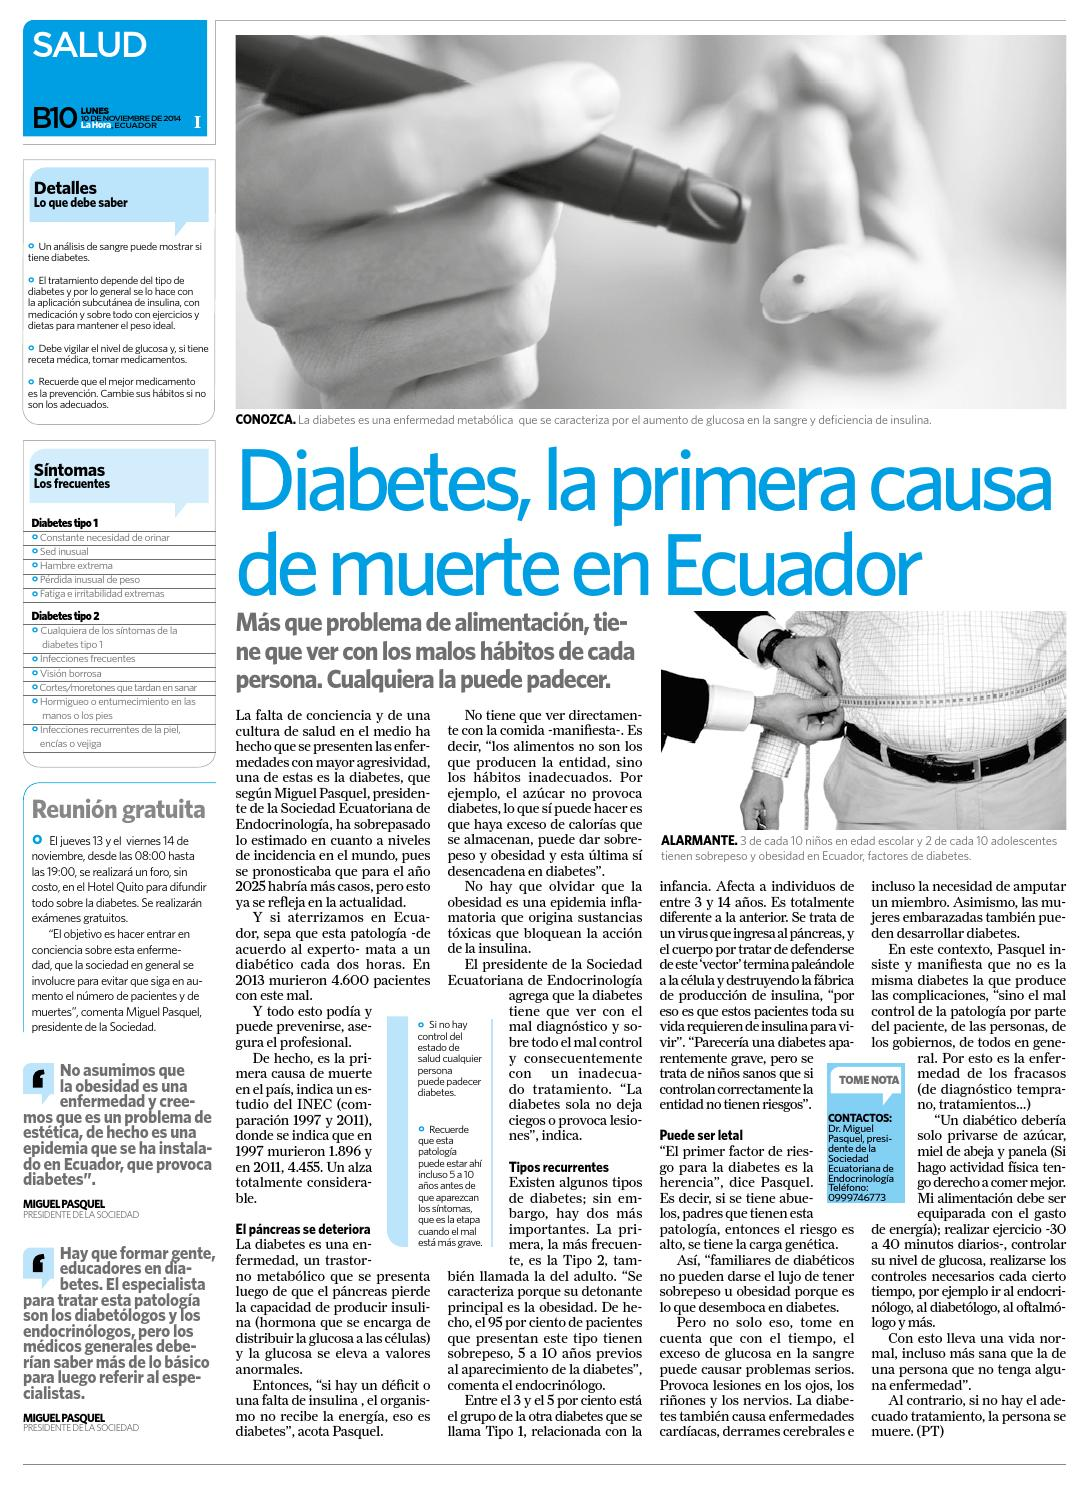 síntomas de diabetes en manos y pies